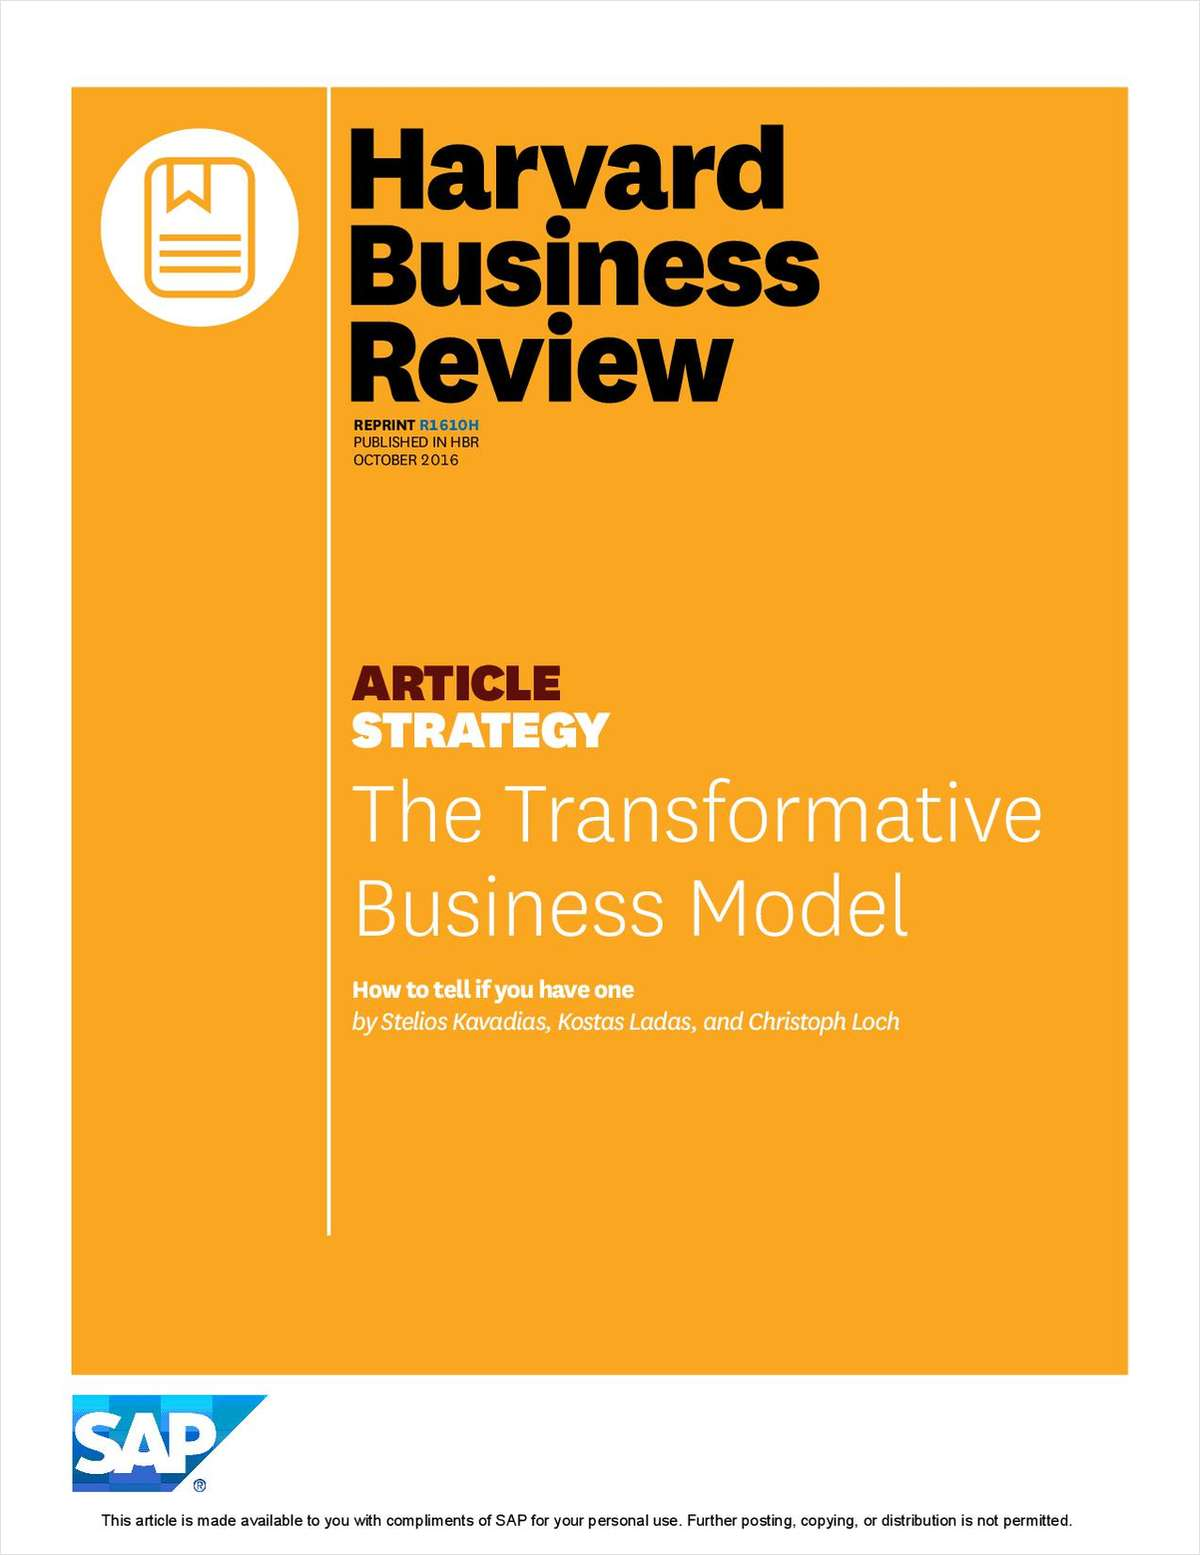 Harvard Business Review: The Transformative Business Model